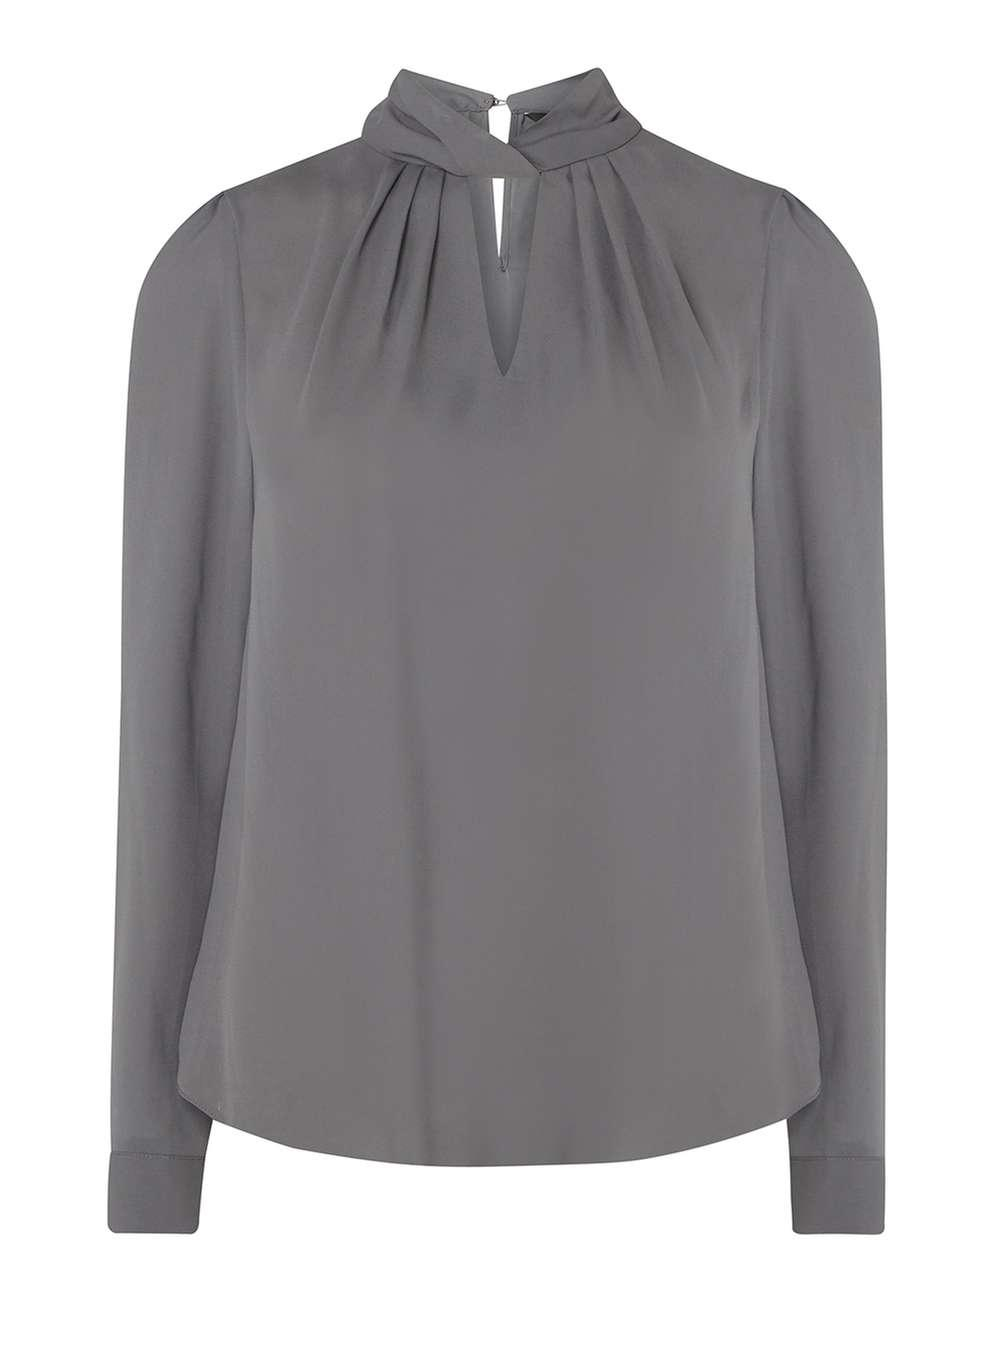 Lyst Dorothy Perkins Charcoal Twist Neck Blouse In Gray